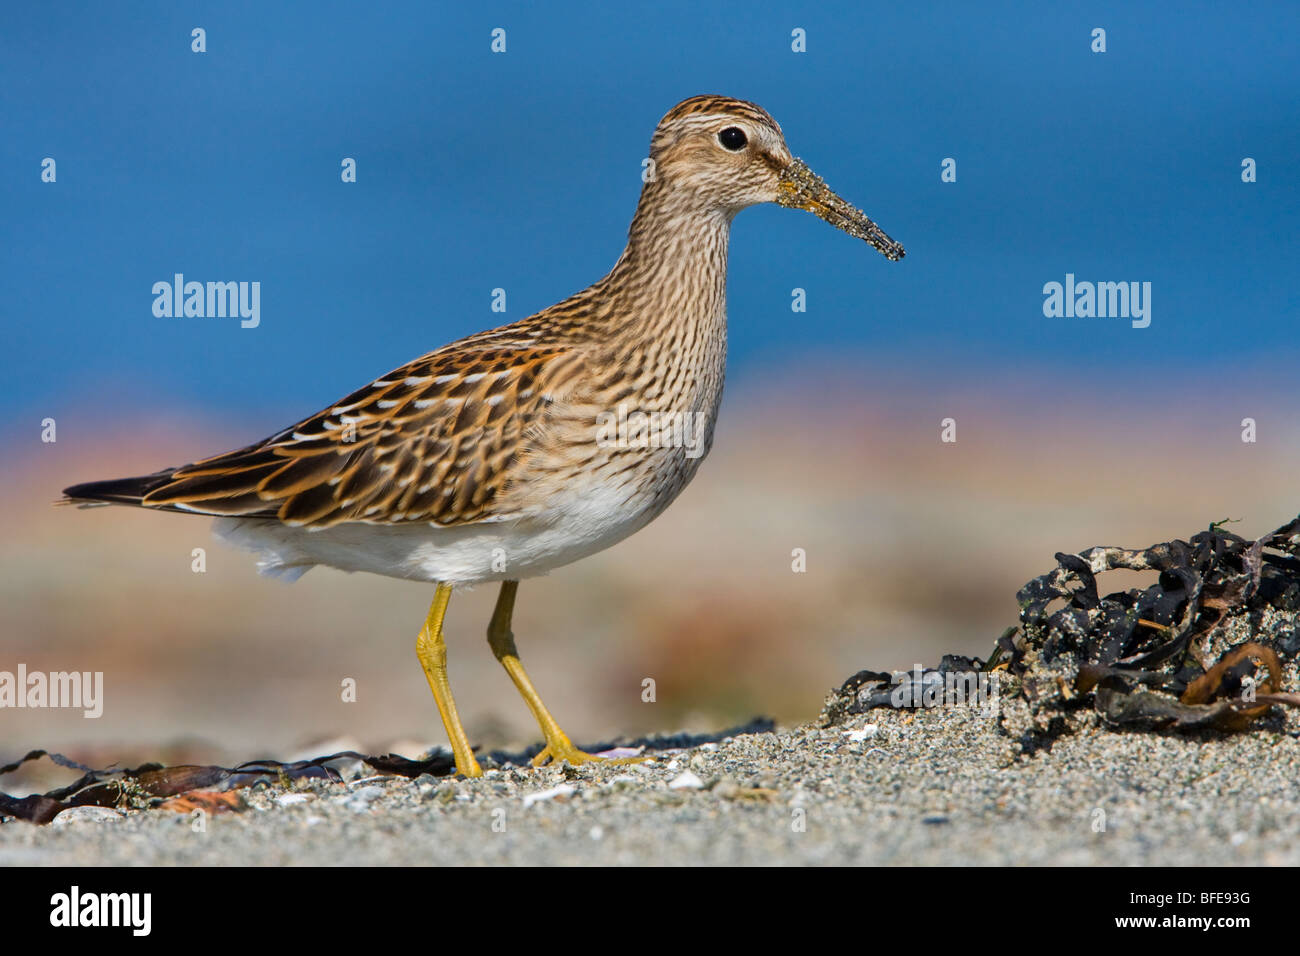 A Pectoral sandpiper (Calidris melanotos) feeds along the shoreline in Victoria, Vancouver Island, British Columbia, - Stock Image